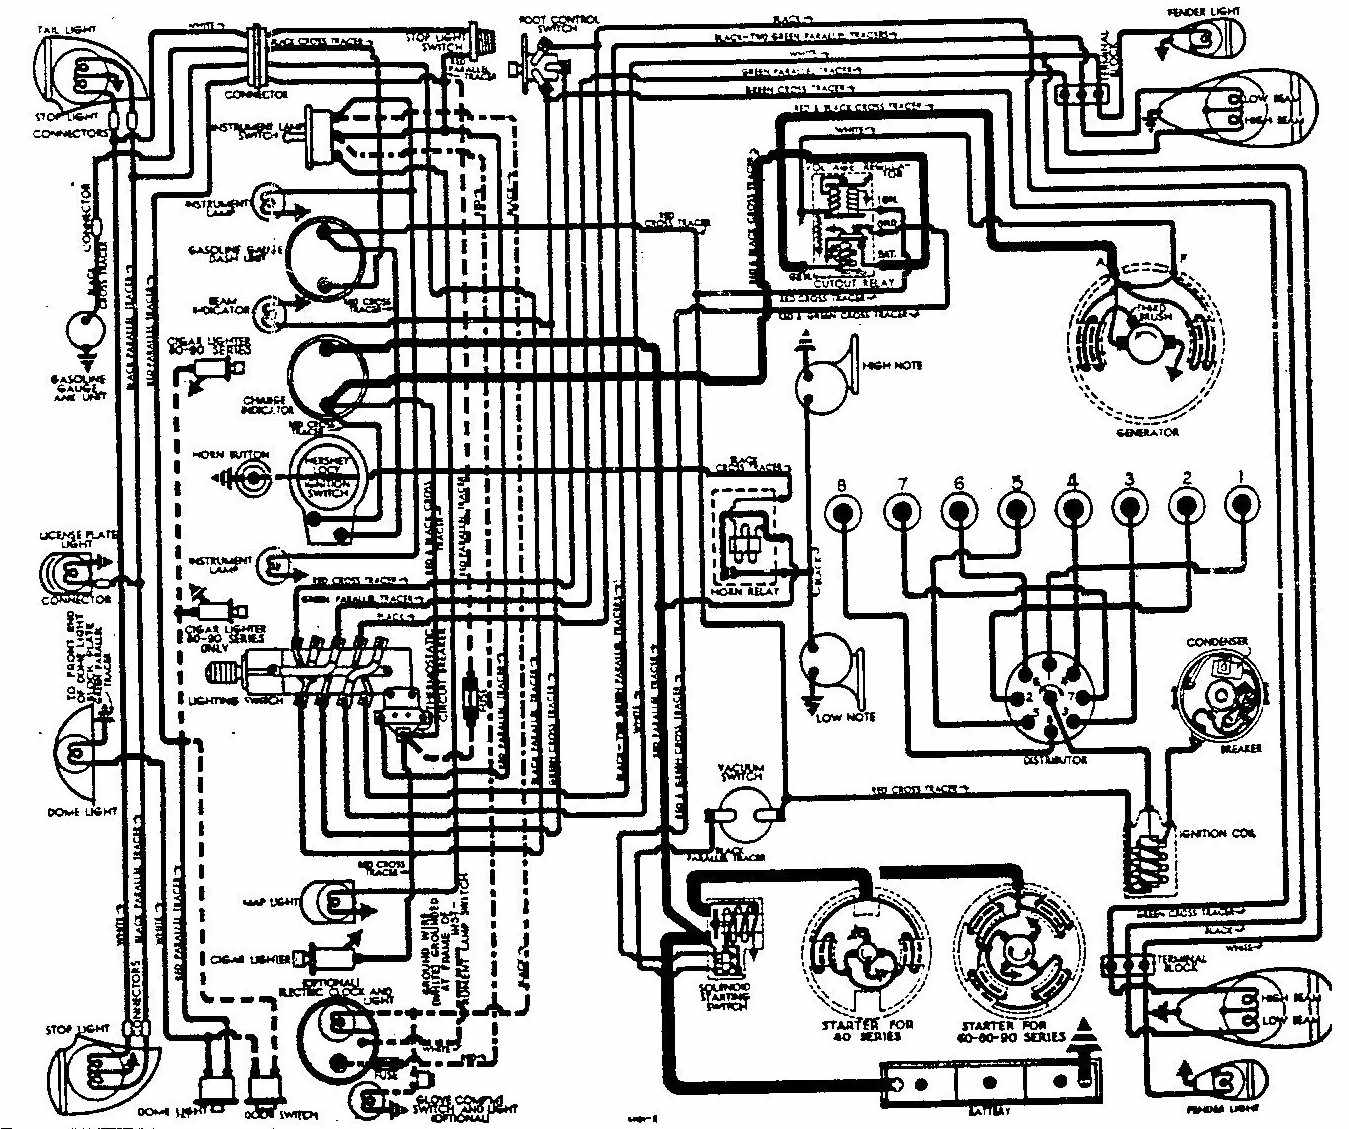 Buick+Roadmaster+1938+Electrical+Wiring+Diagram ford 7710 tractor wiring diagram ford discover your wiring Ford Tractor Wiring Harness Diagram at crackthecode.co